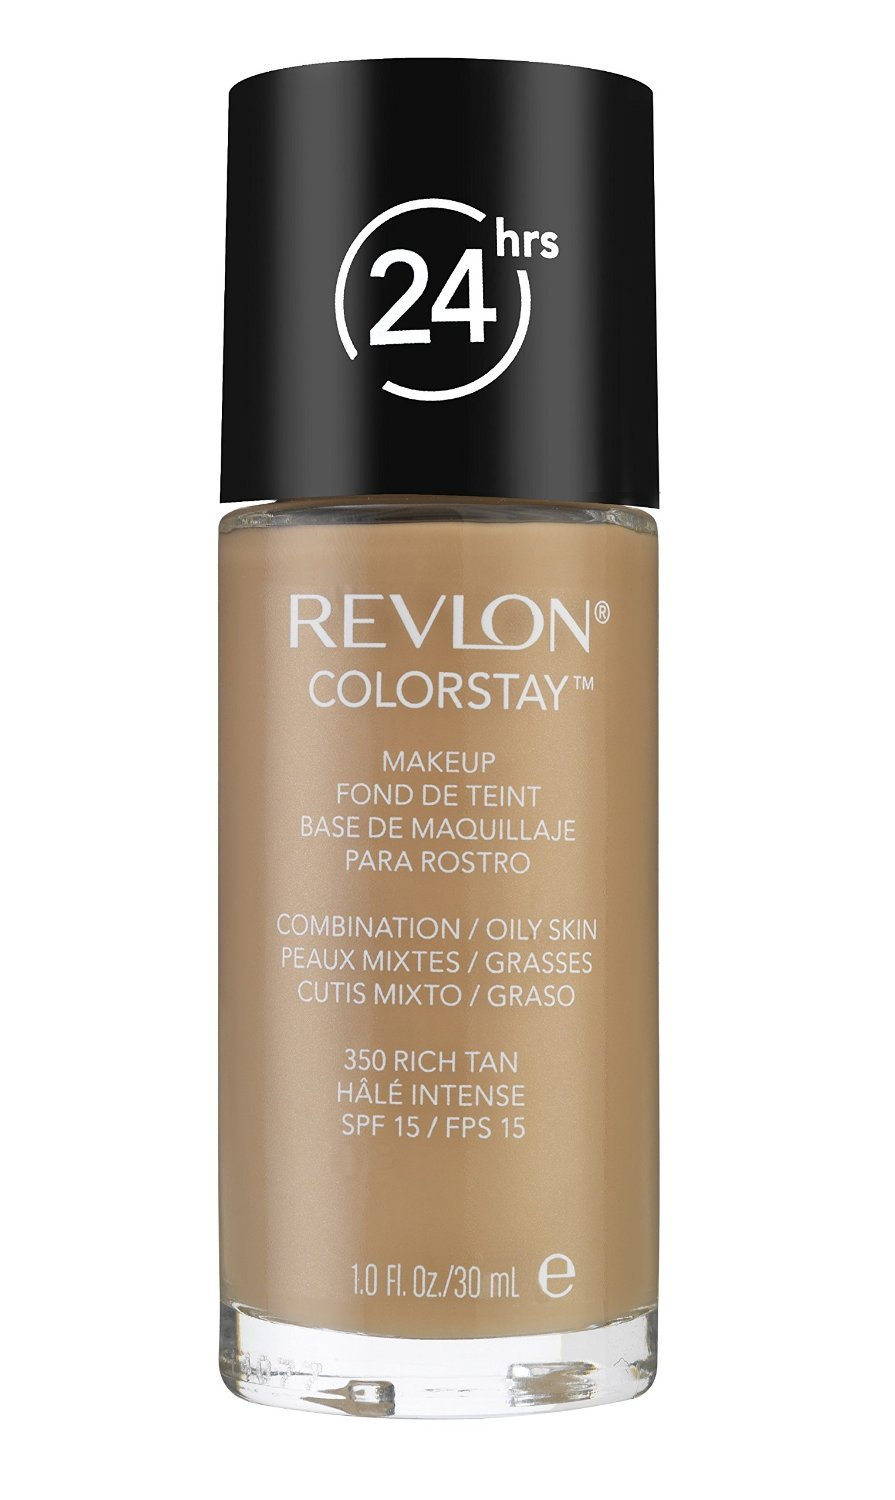 REVLON COLORSTAY 350 RICH TAN COMBINATION/OILY SKIN ALL DAY WEAR FOUNDATION WITH SOFTFLEX AND SPF 6 30ML by Revlon